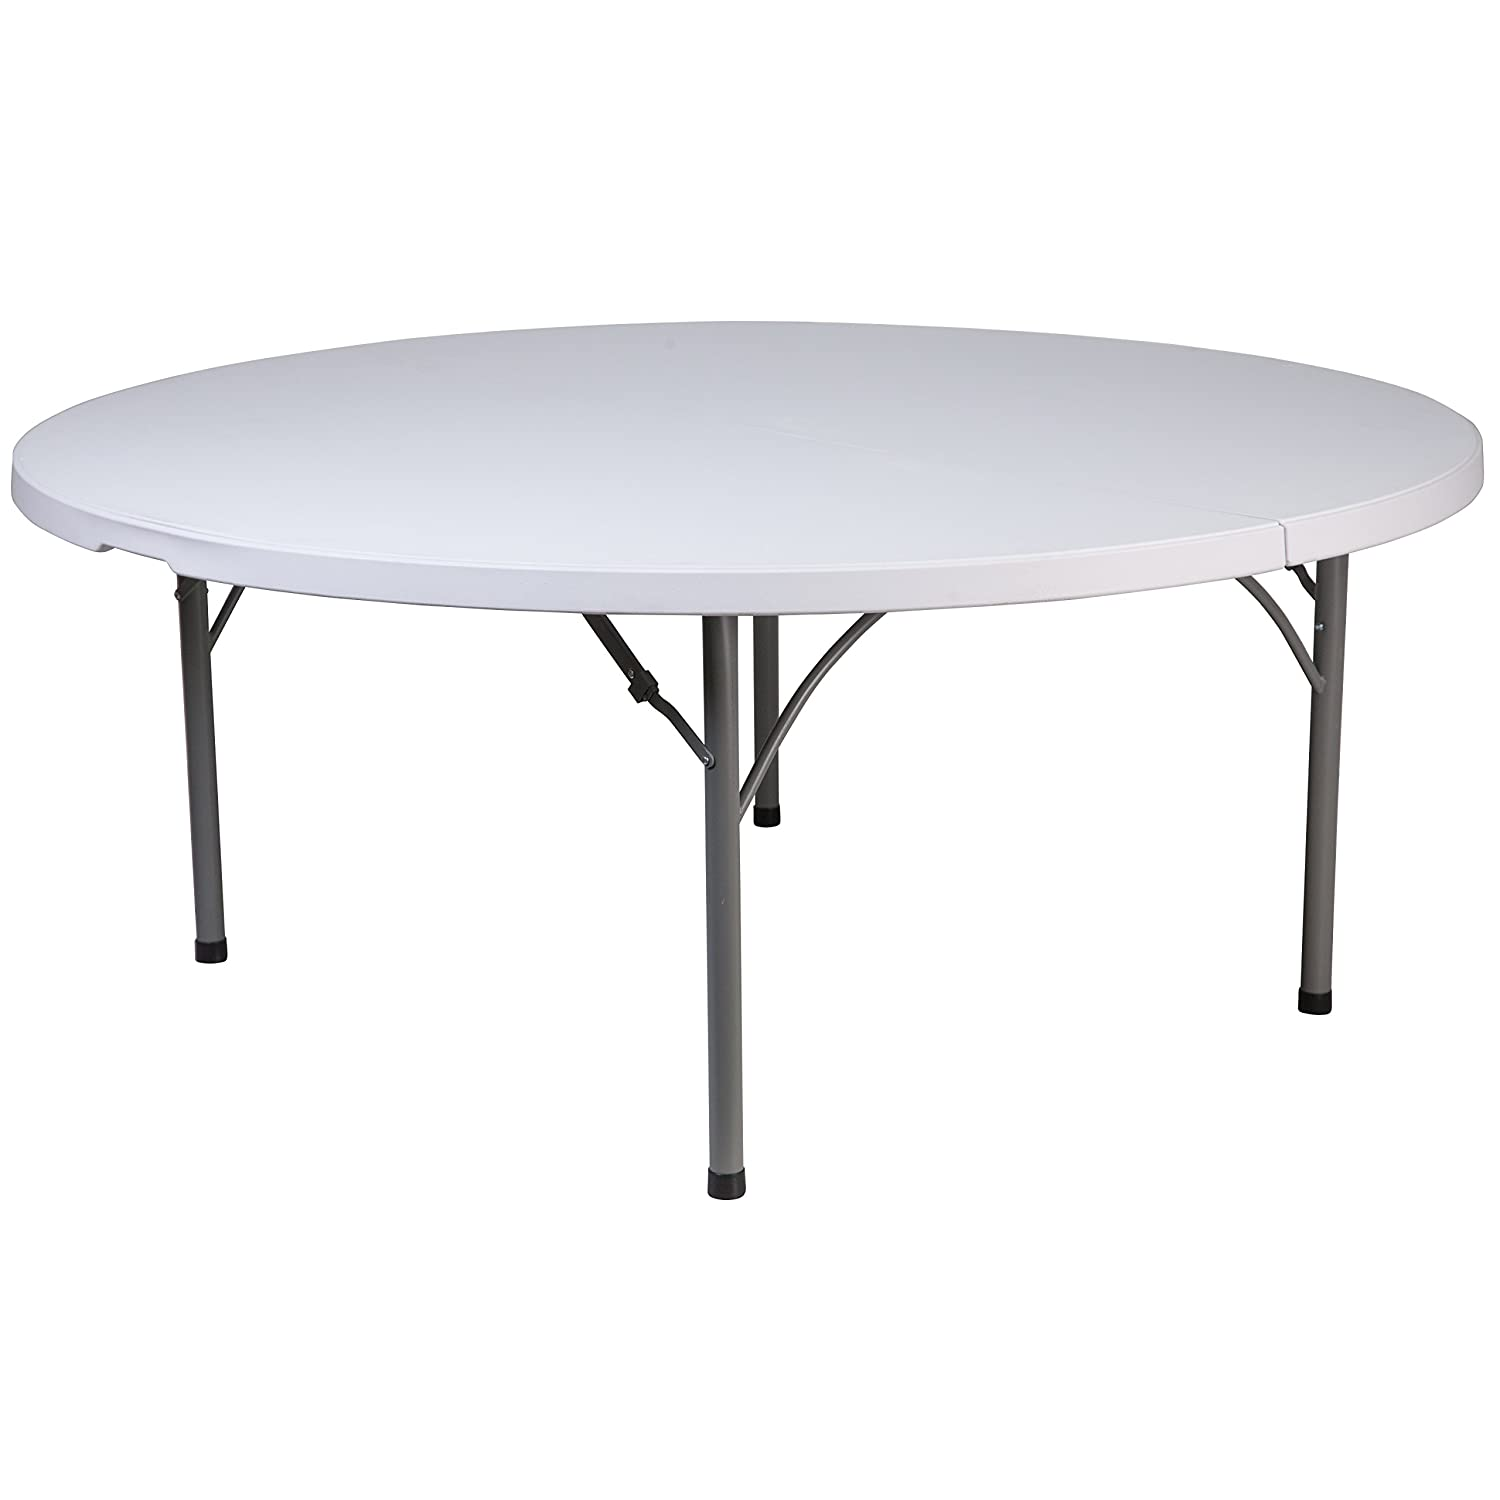 Flash Furniture 48'' Round Granite White Plastic Folding Table RB-48R-GG